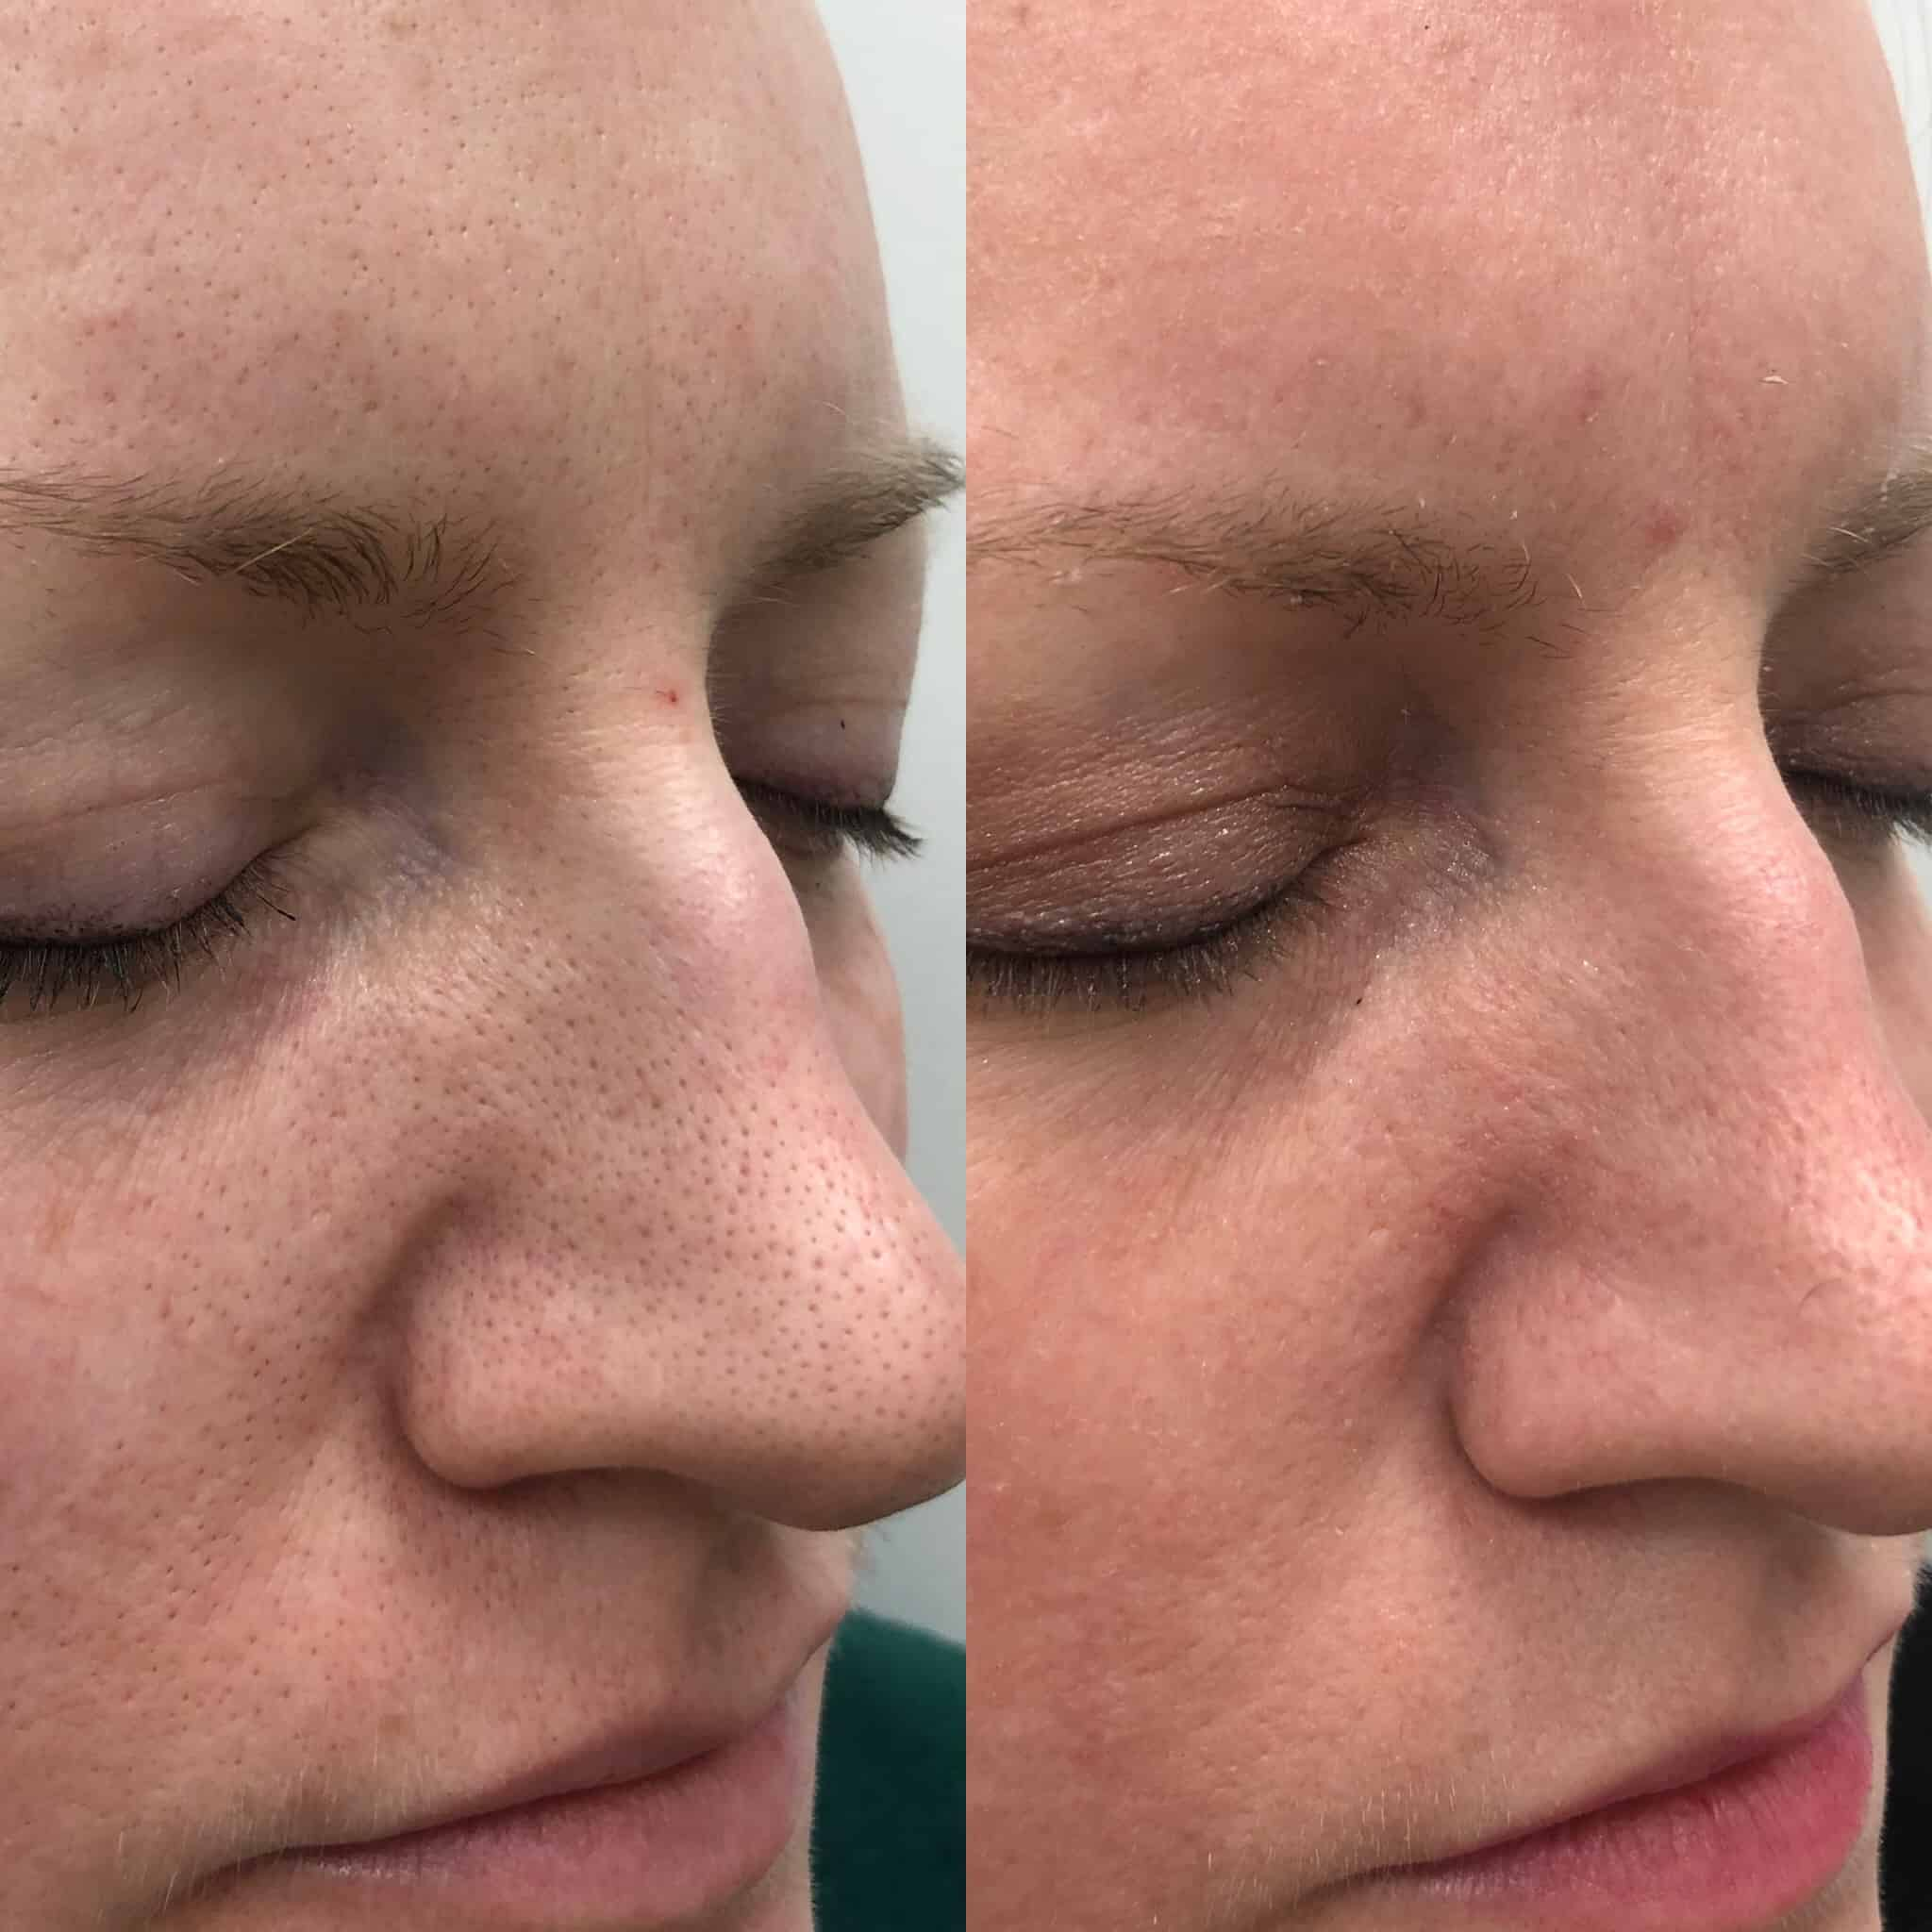 Halo Reduction in Pore Size